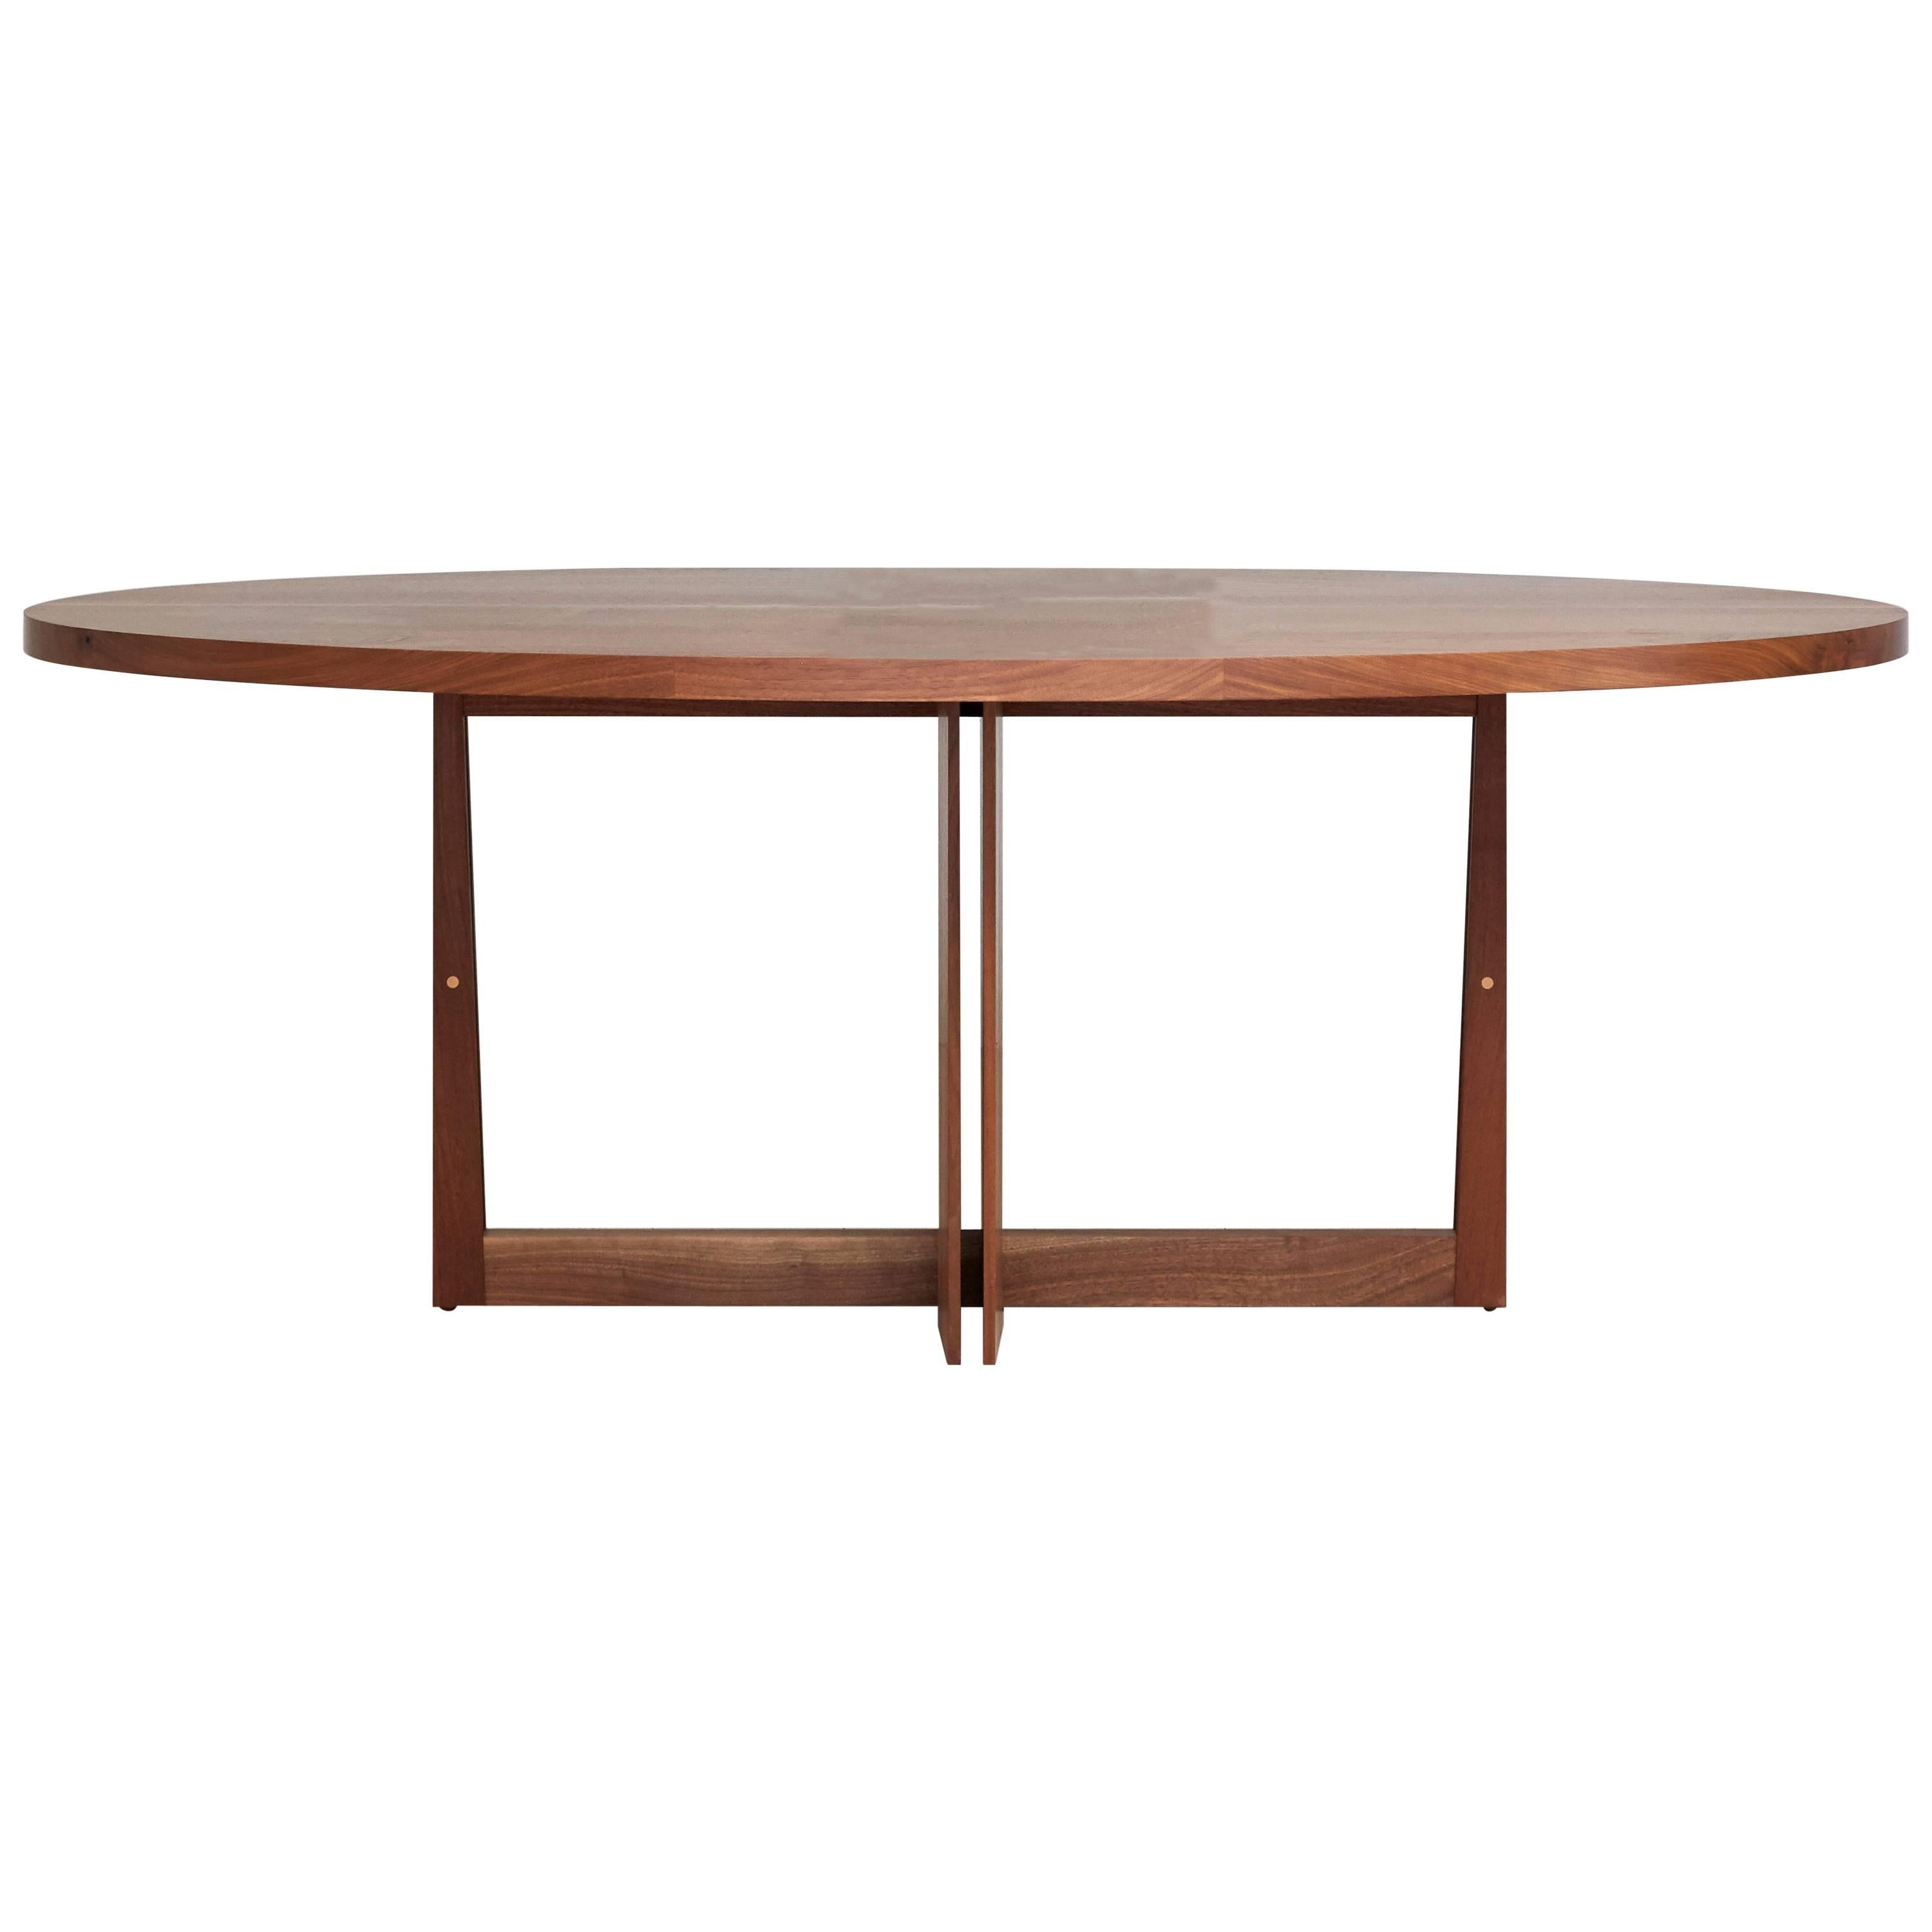 Oval Swan Dining Table in Solid Black Walnut